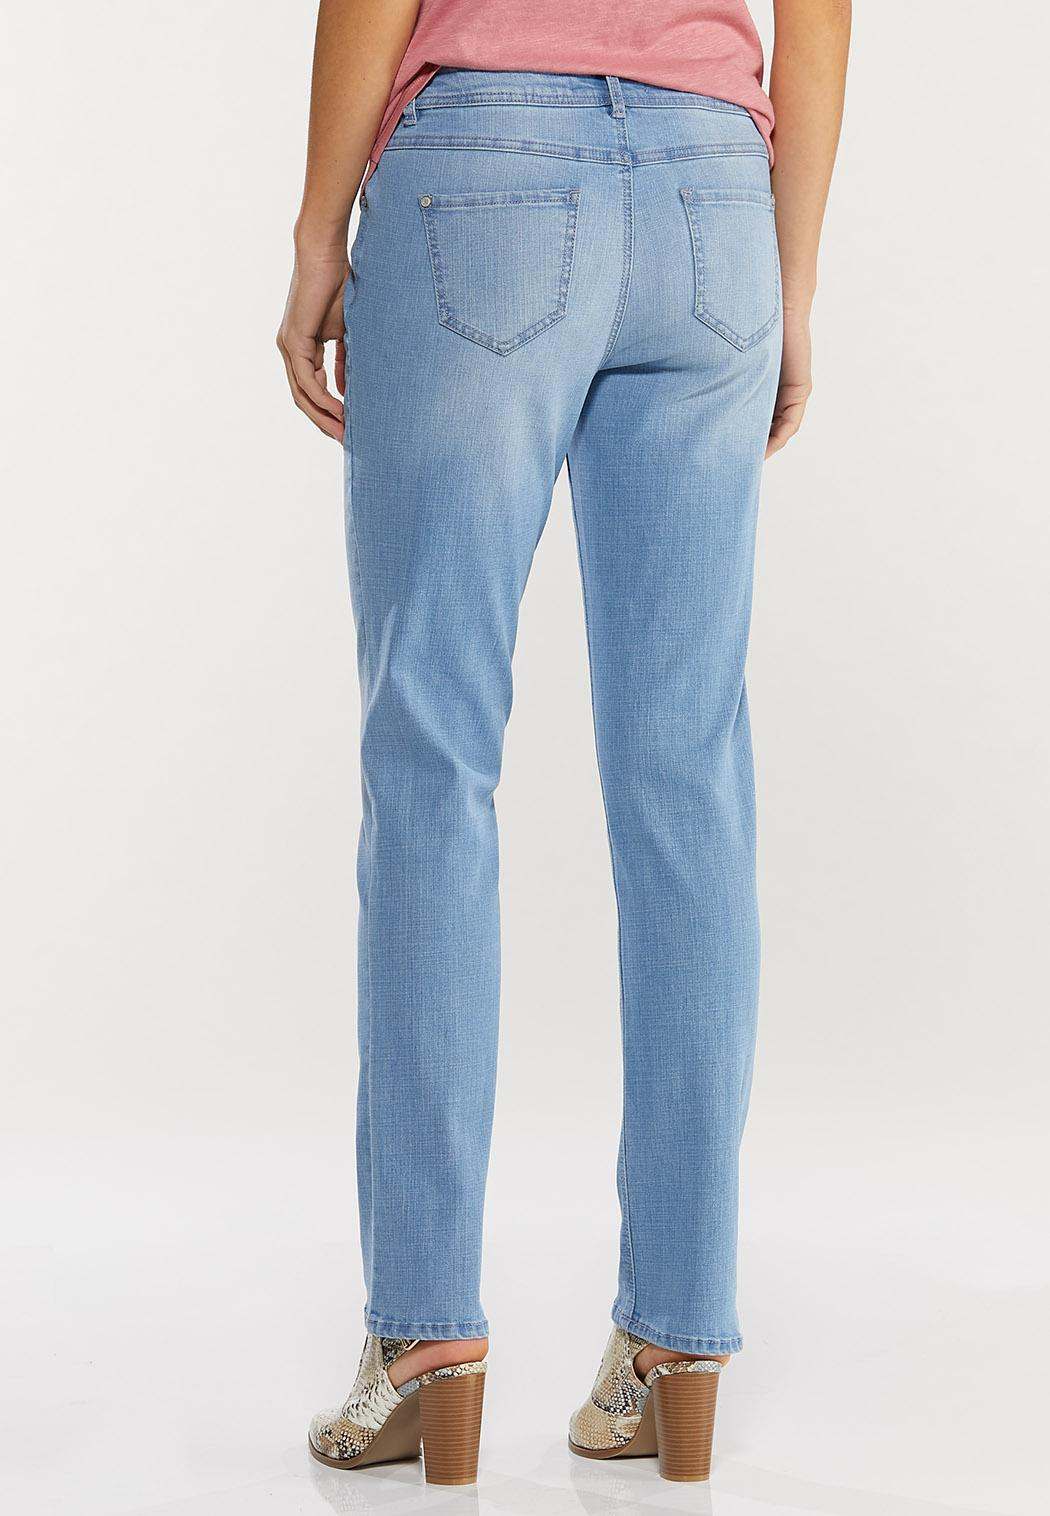 Shape Enhancing Straight Leg Jeans (Item #44492364)